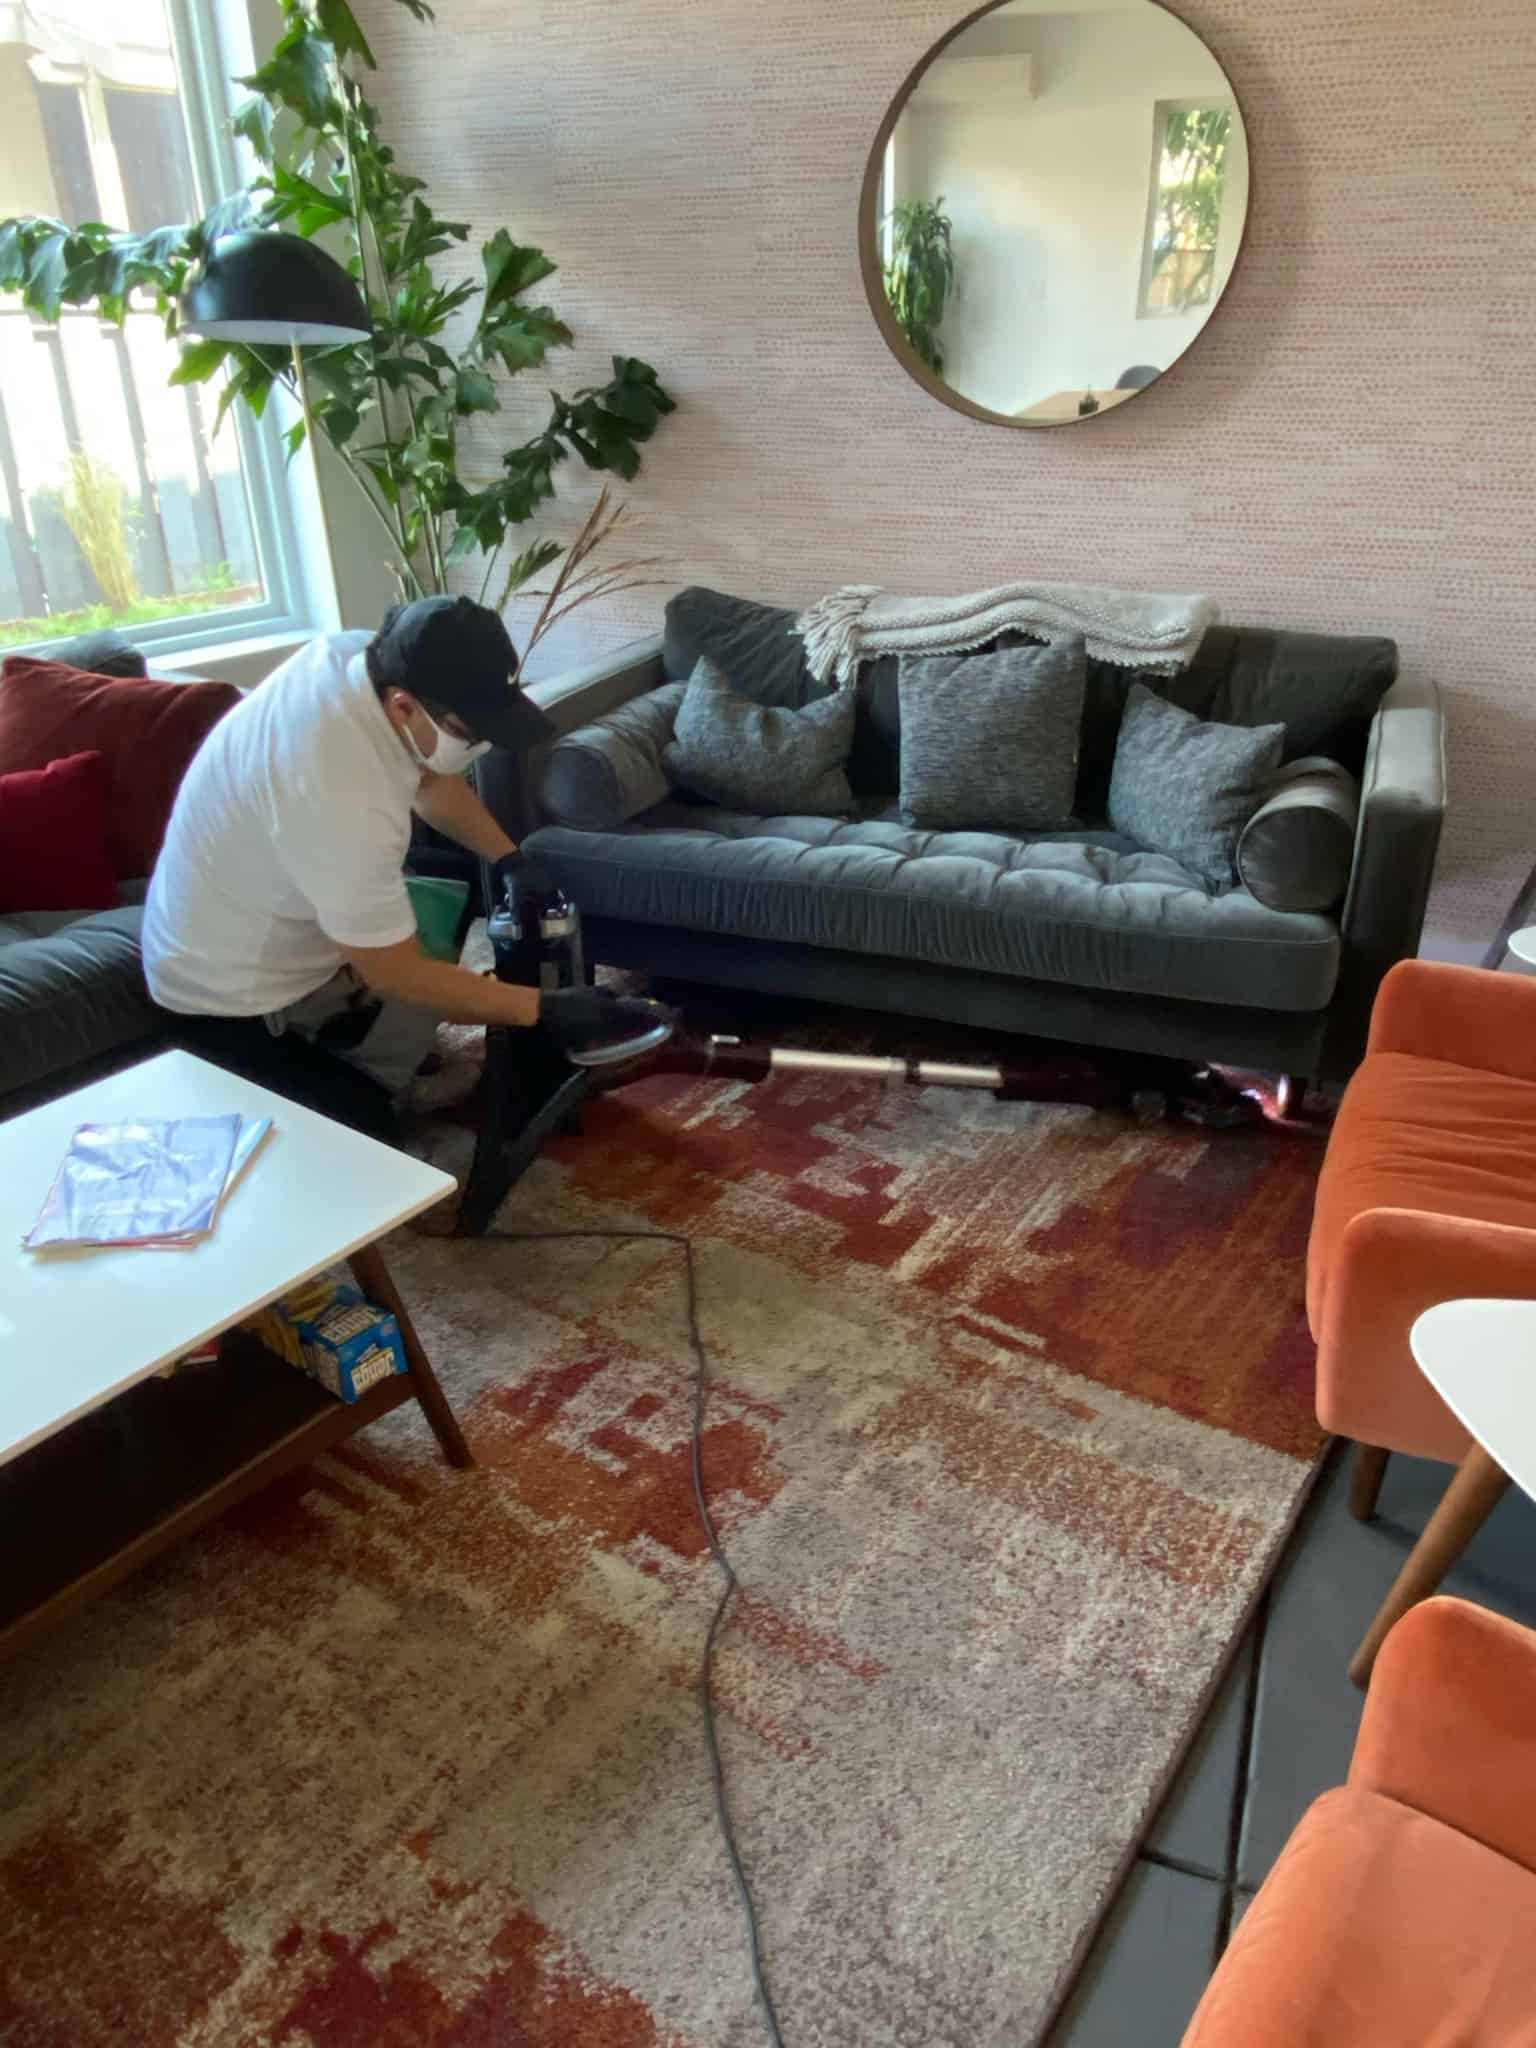 male cleaner vacuuming underneath a couch in the living room